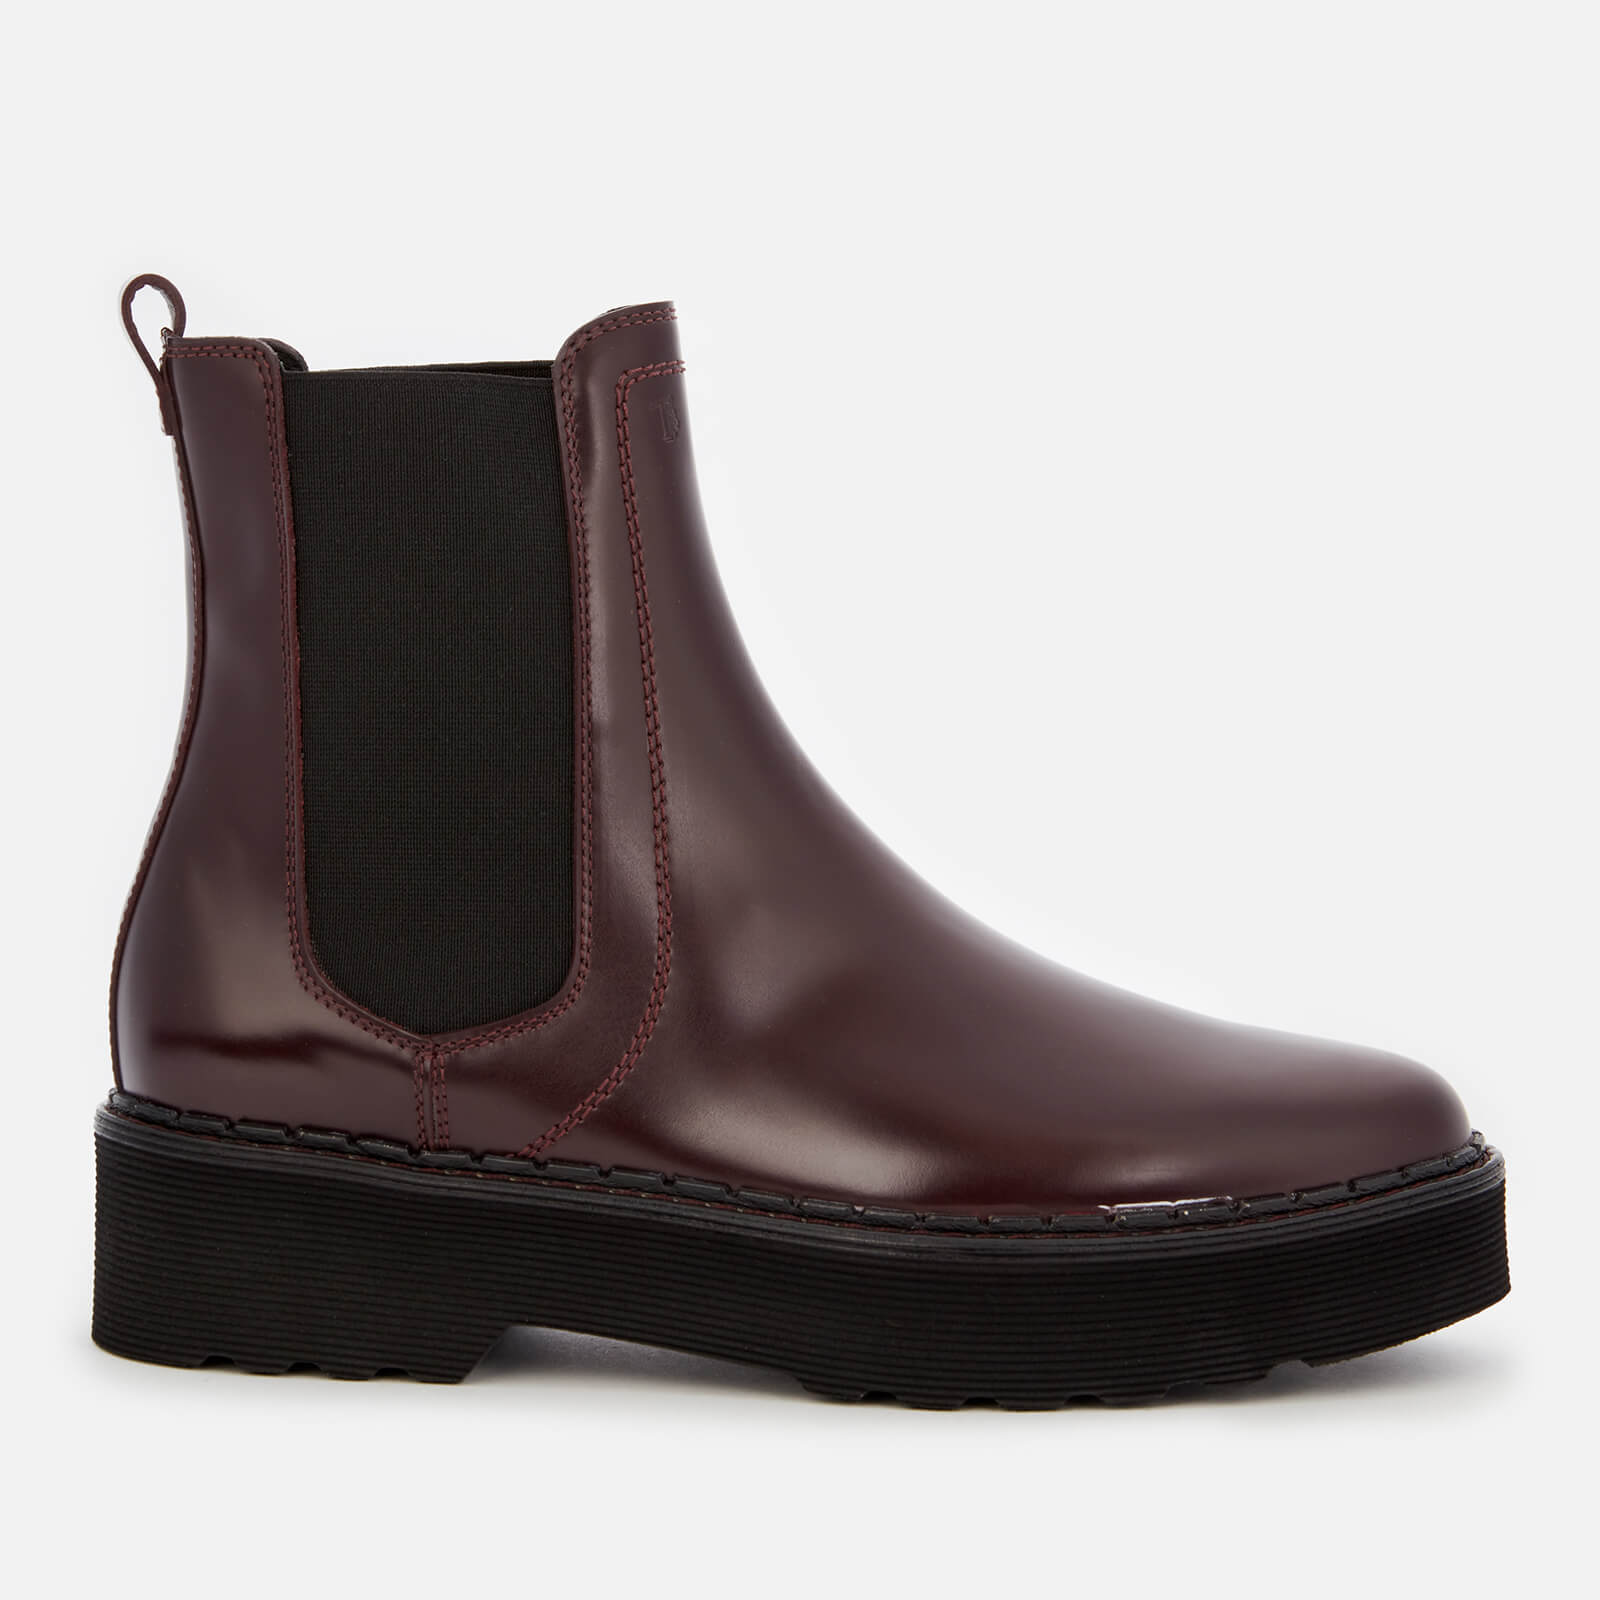 Tod's Women's Leather Chelsea Boots - Burgundy - Uk 4